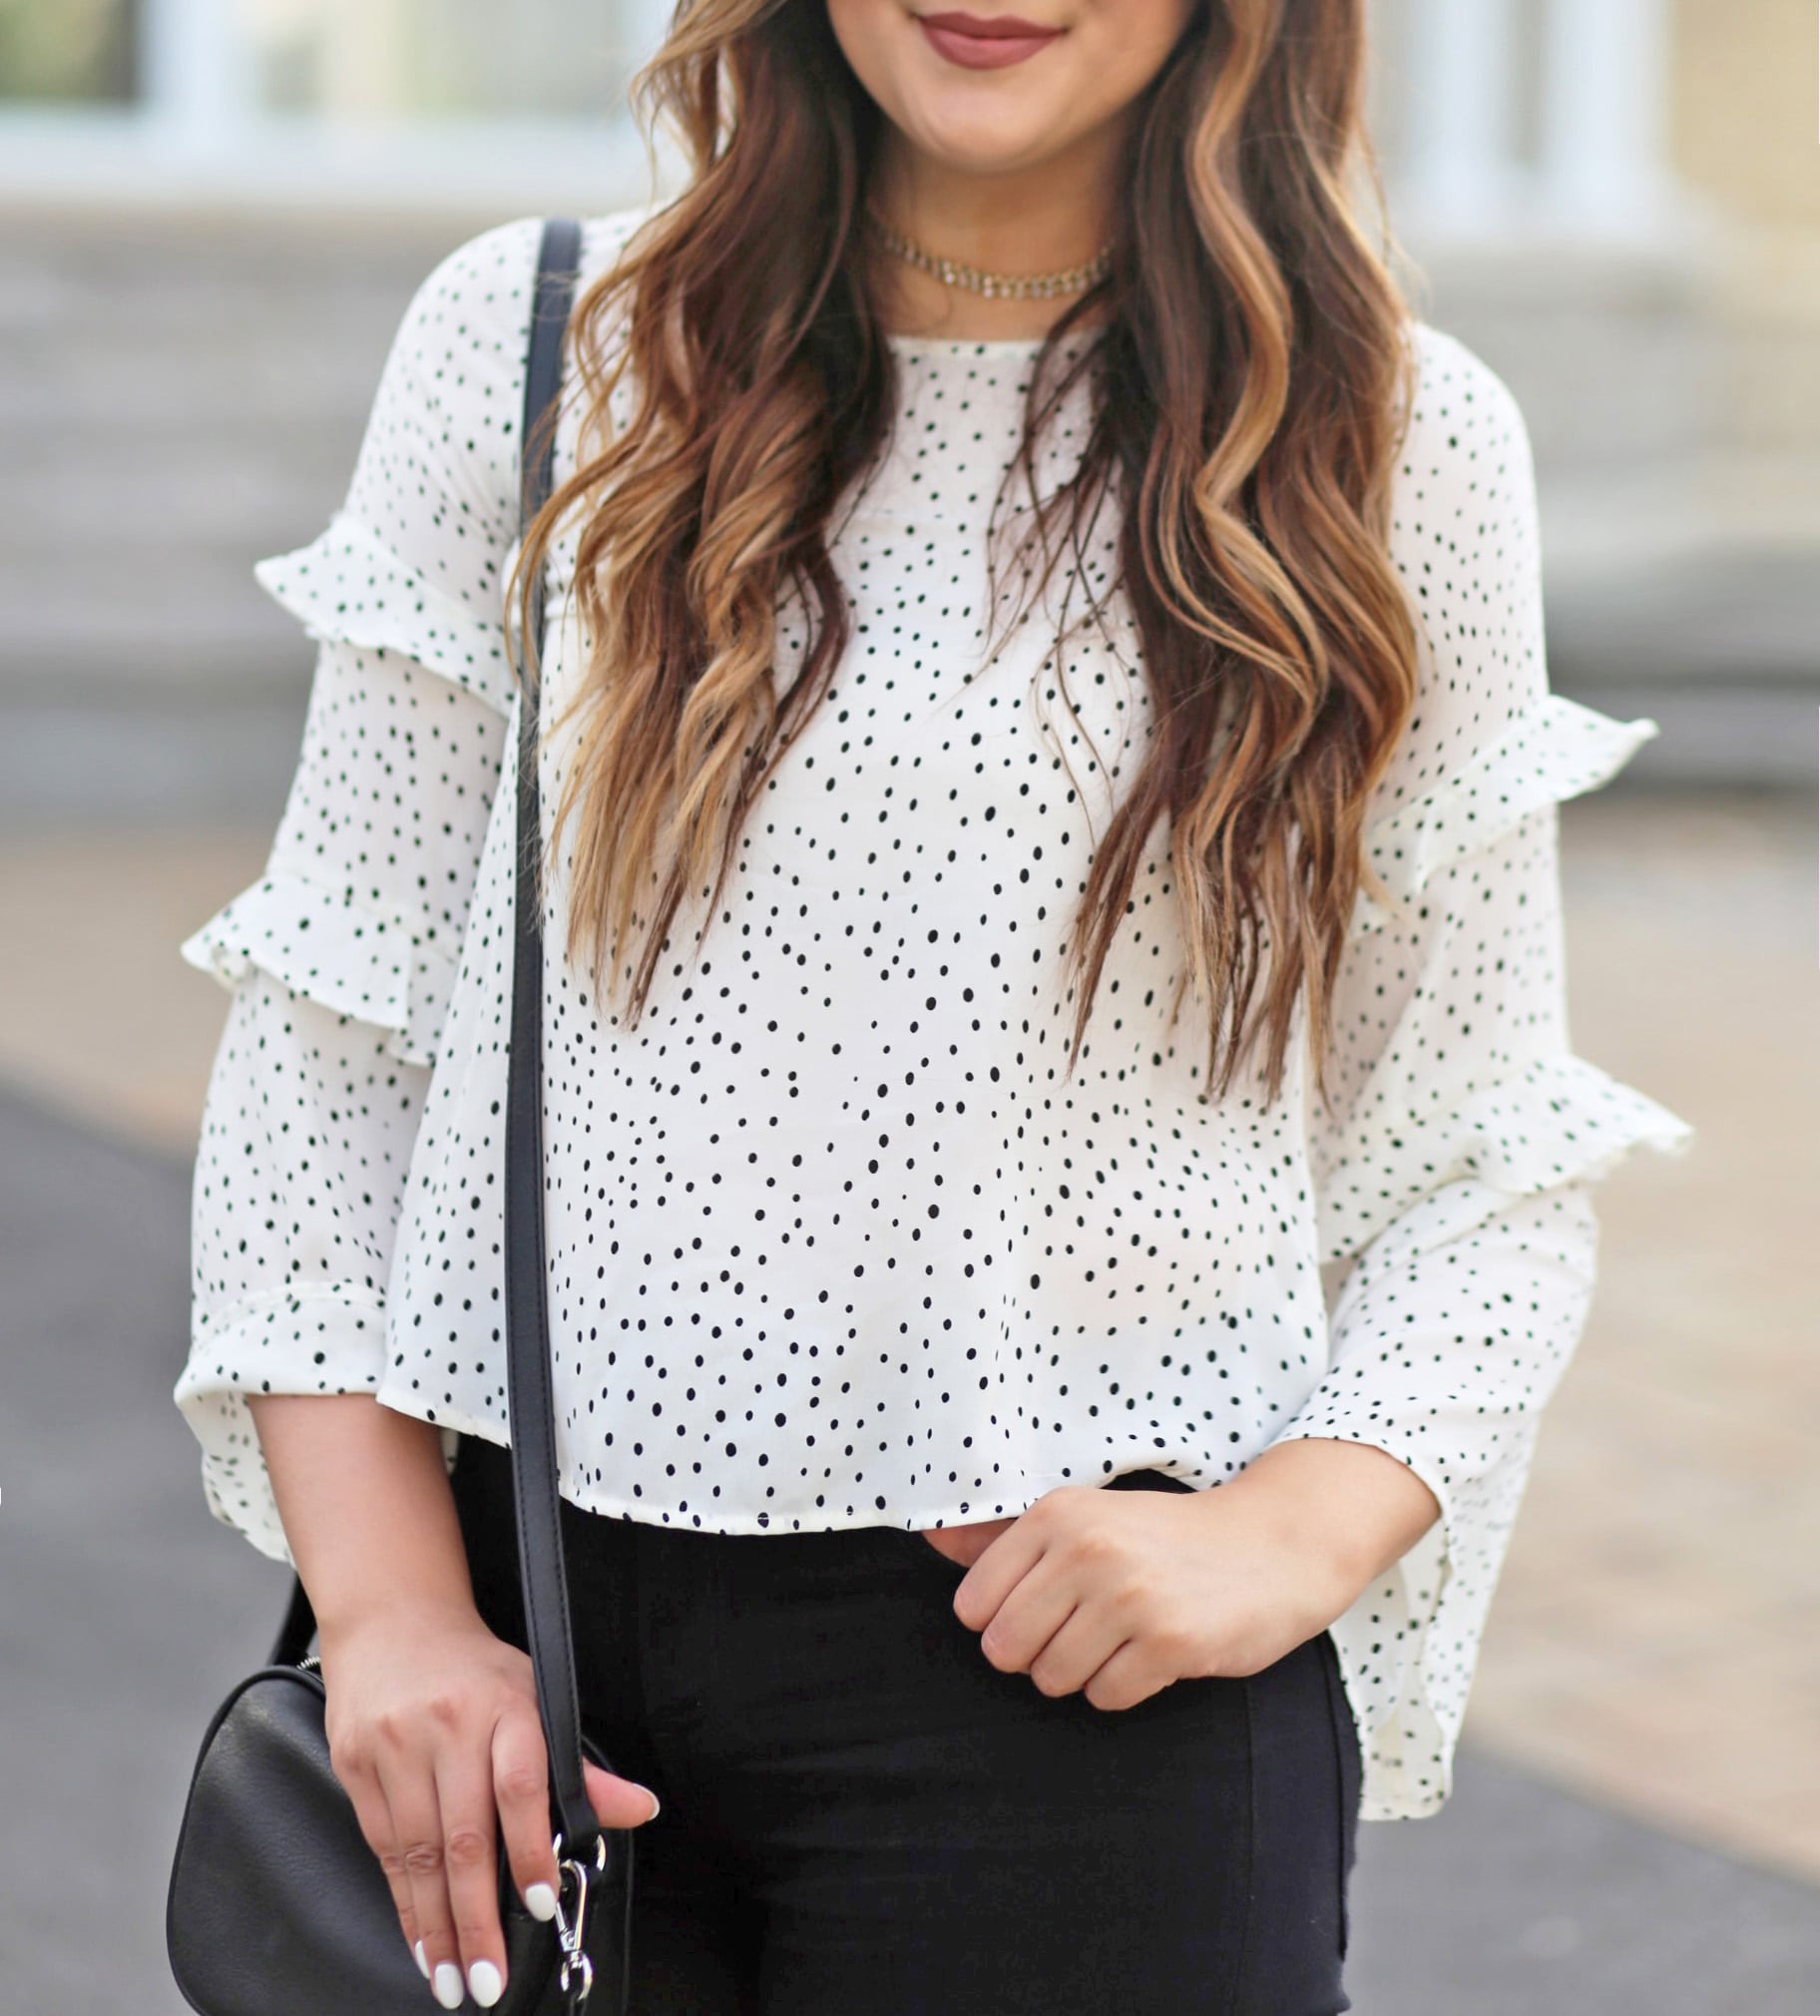 polka dots ruffles | white shirt outfit | beauty blogger Mash Elle | polka dots | black ripped jeans | white nails